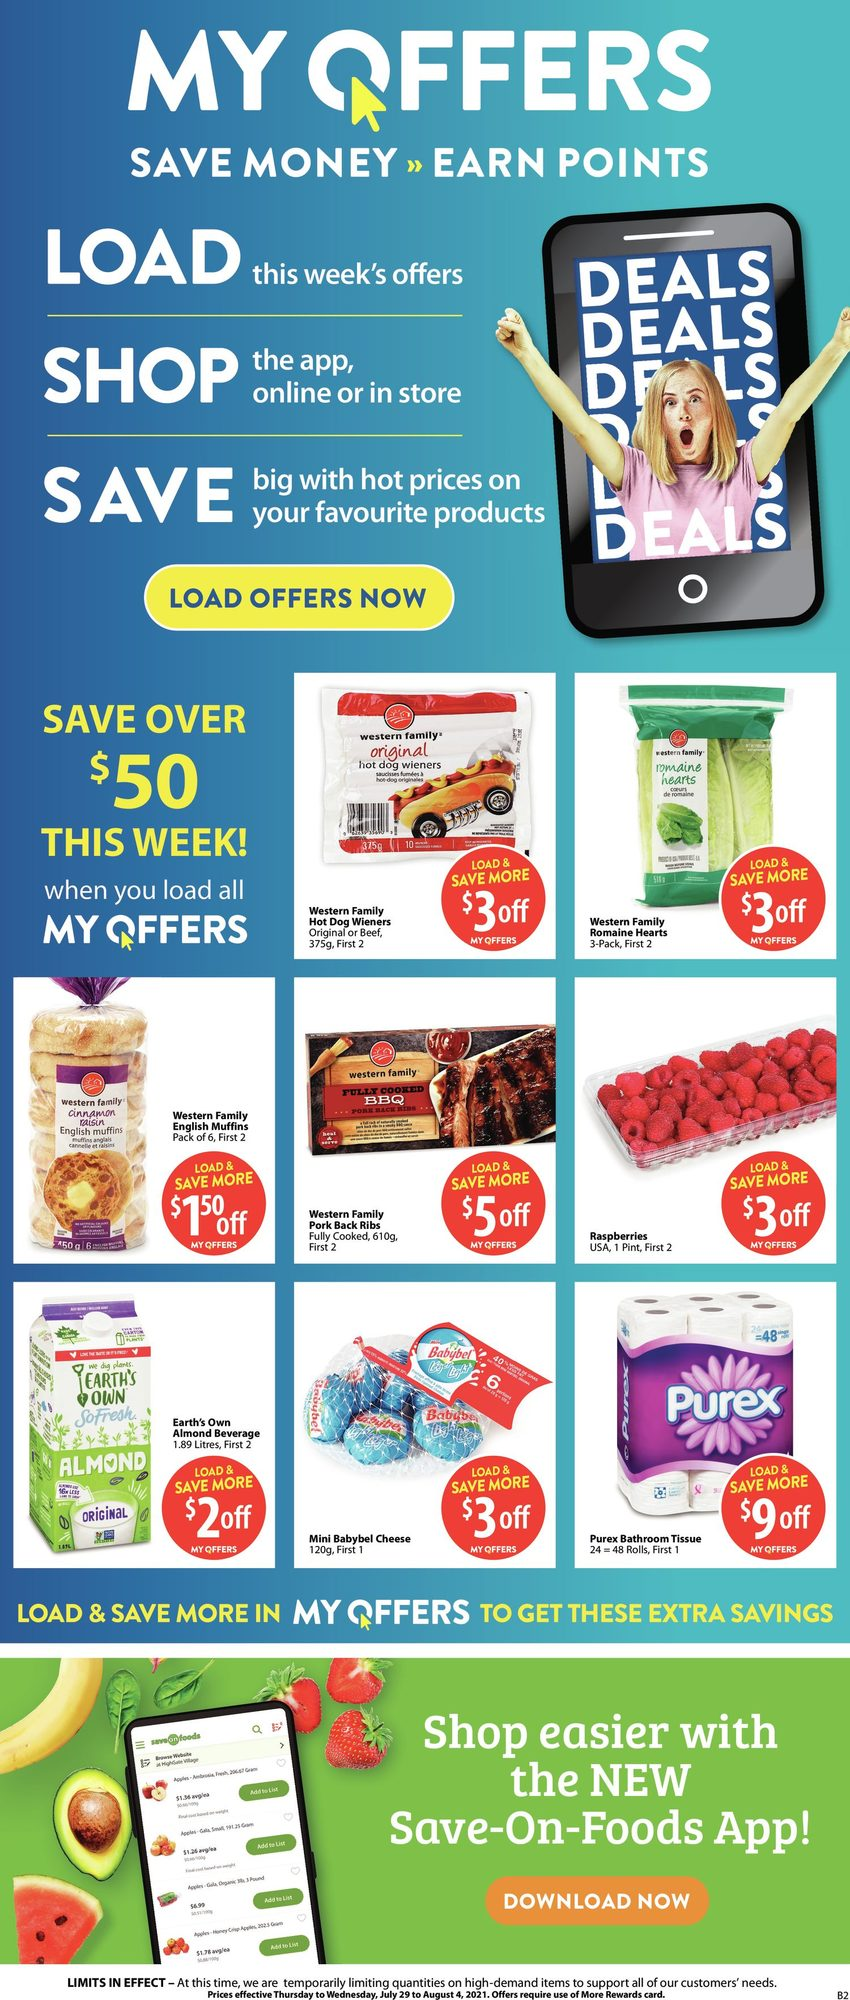 Save-On-Foods - Weekly Flyer Specials - Page 15